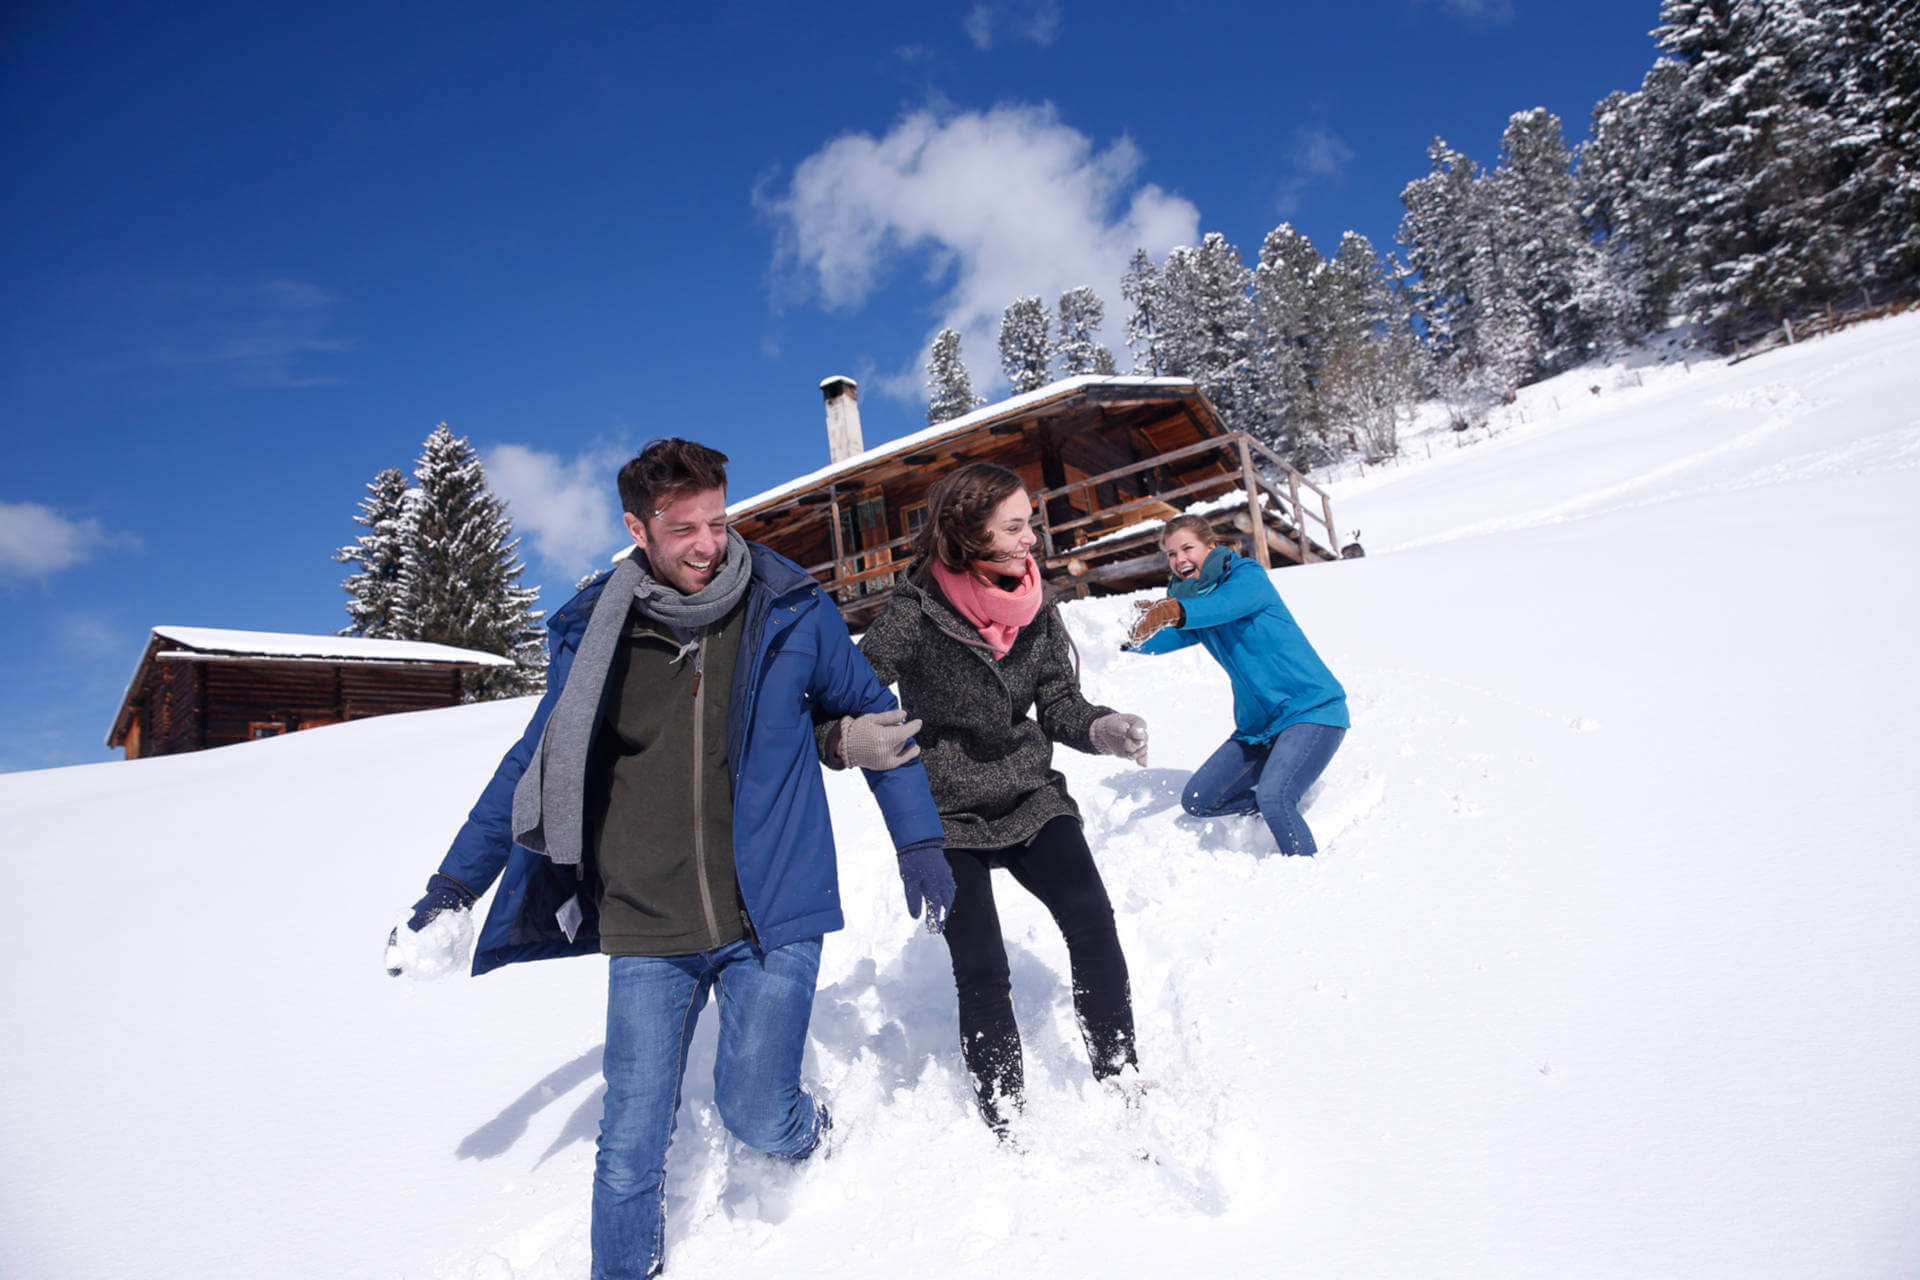 Fit and healthy during the winter season with outdoor activities.